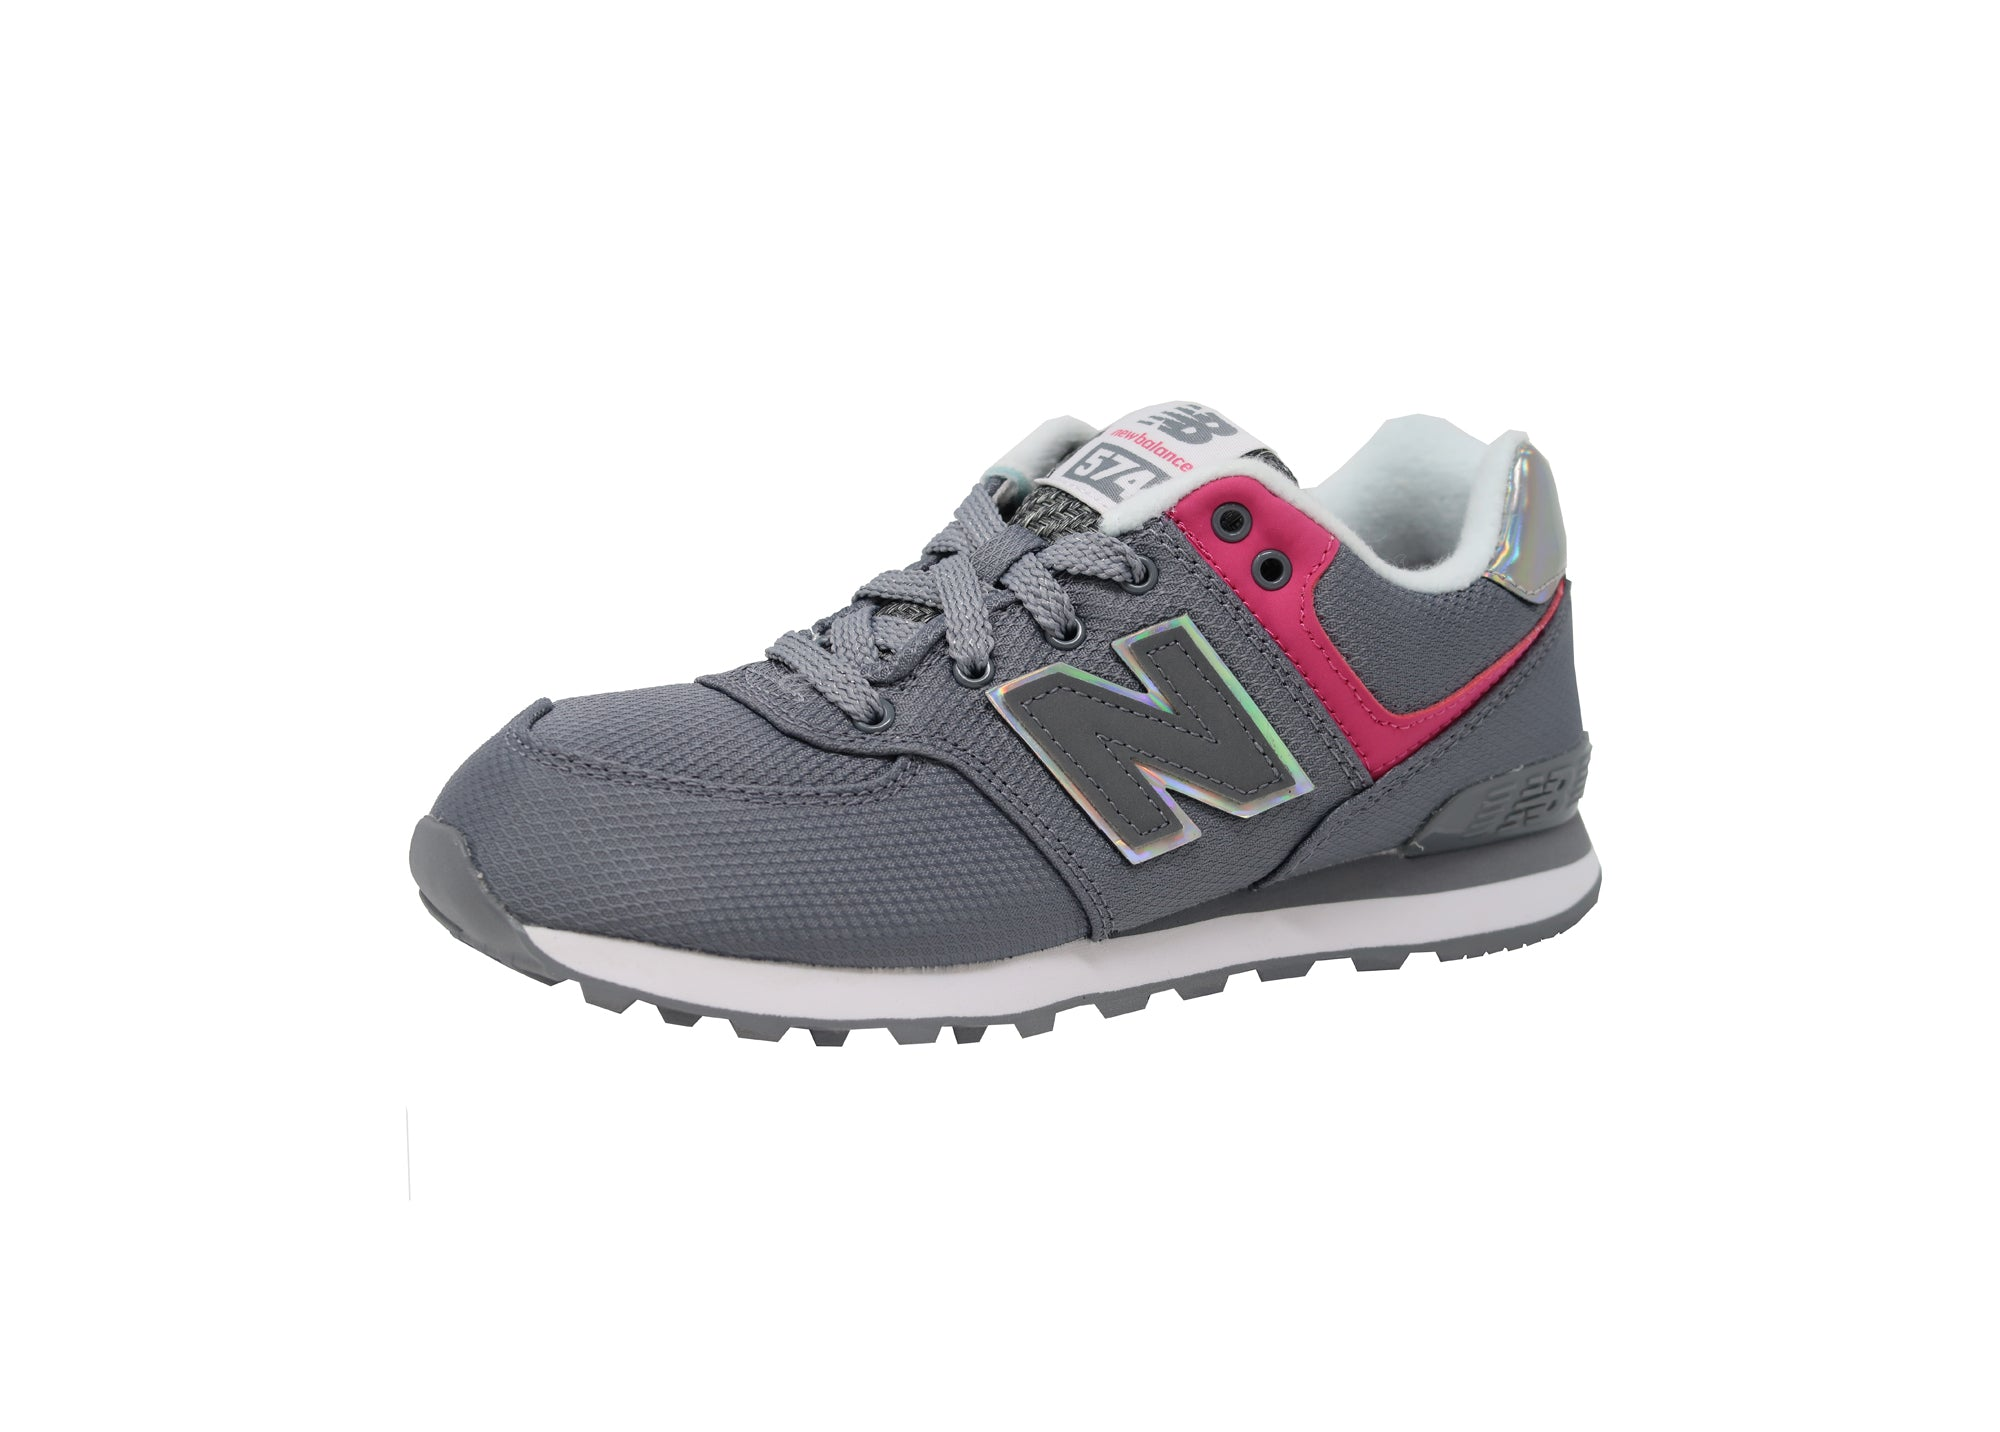 New Balance 574 Gray/Hot Pink/White Kid'sShoes